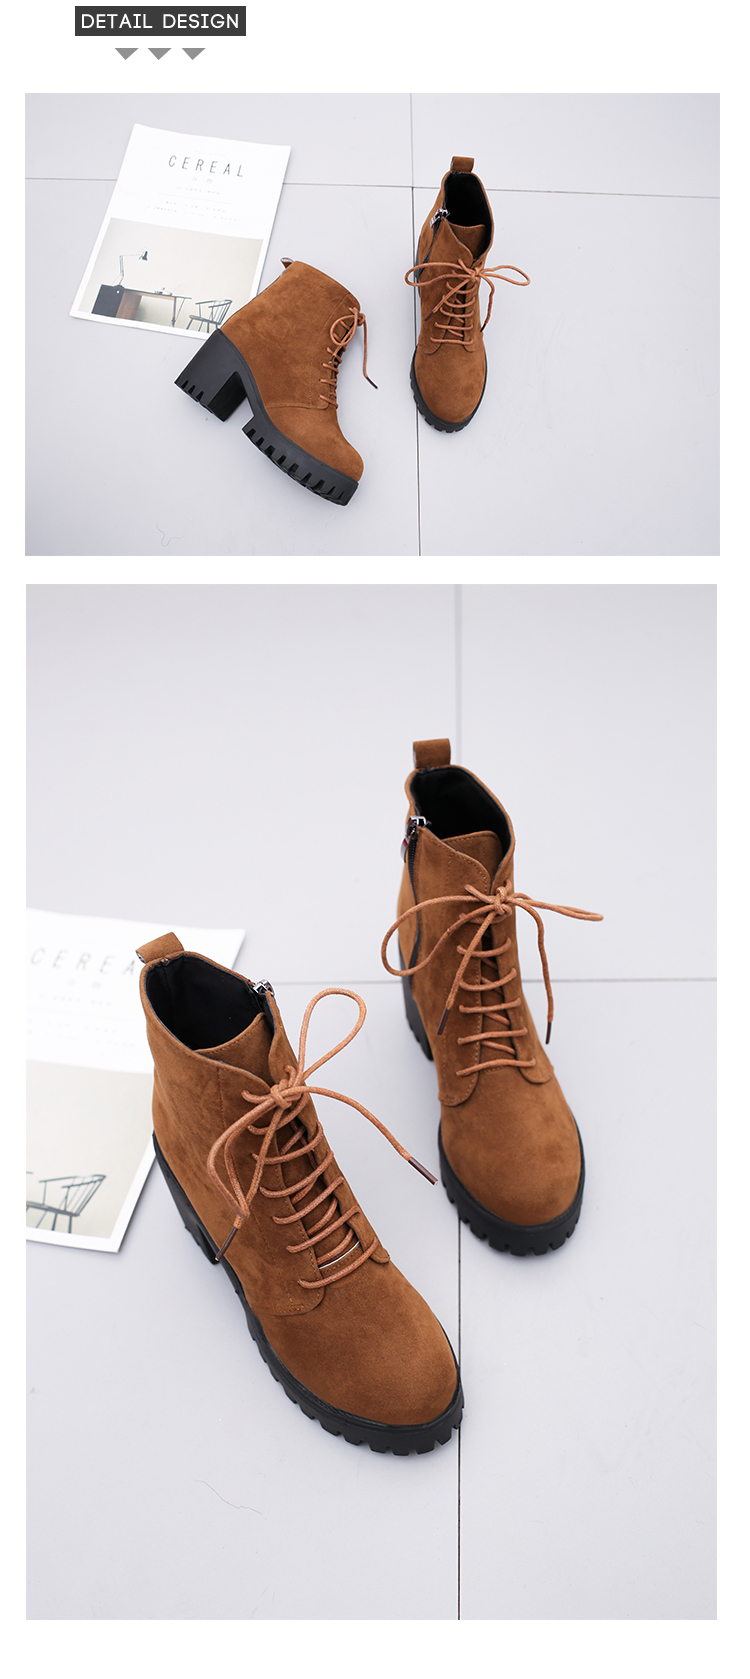 2018 new short tube autumn and winter women's boot thick with high-heeled solid color round head fashion casual warm boots wome 22